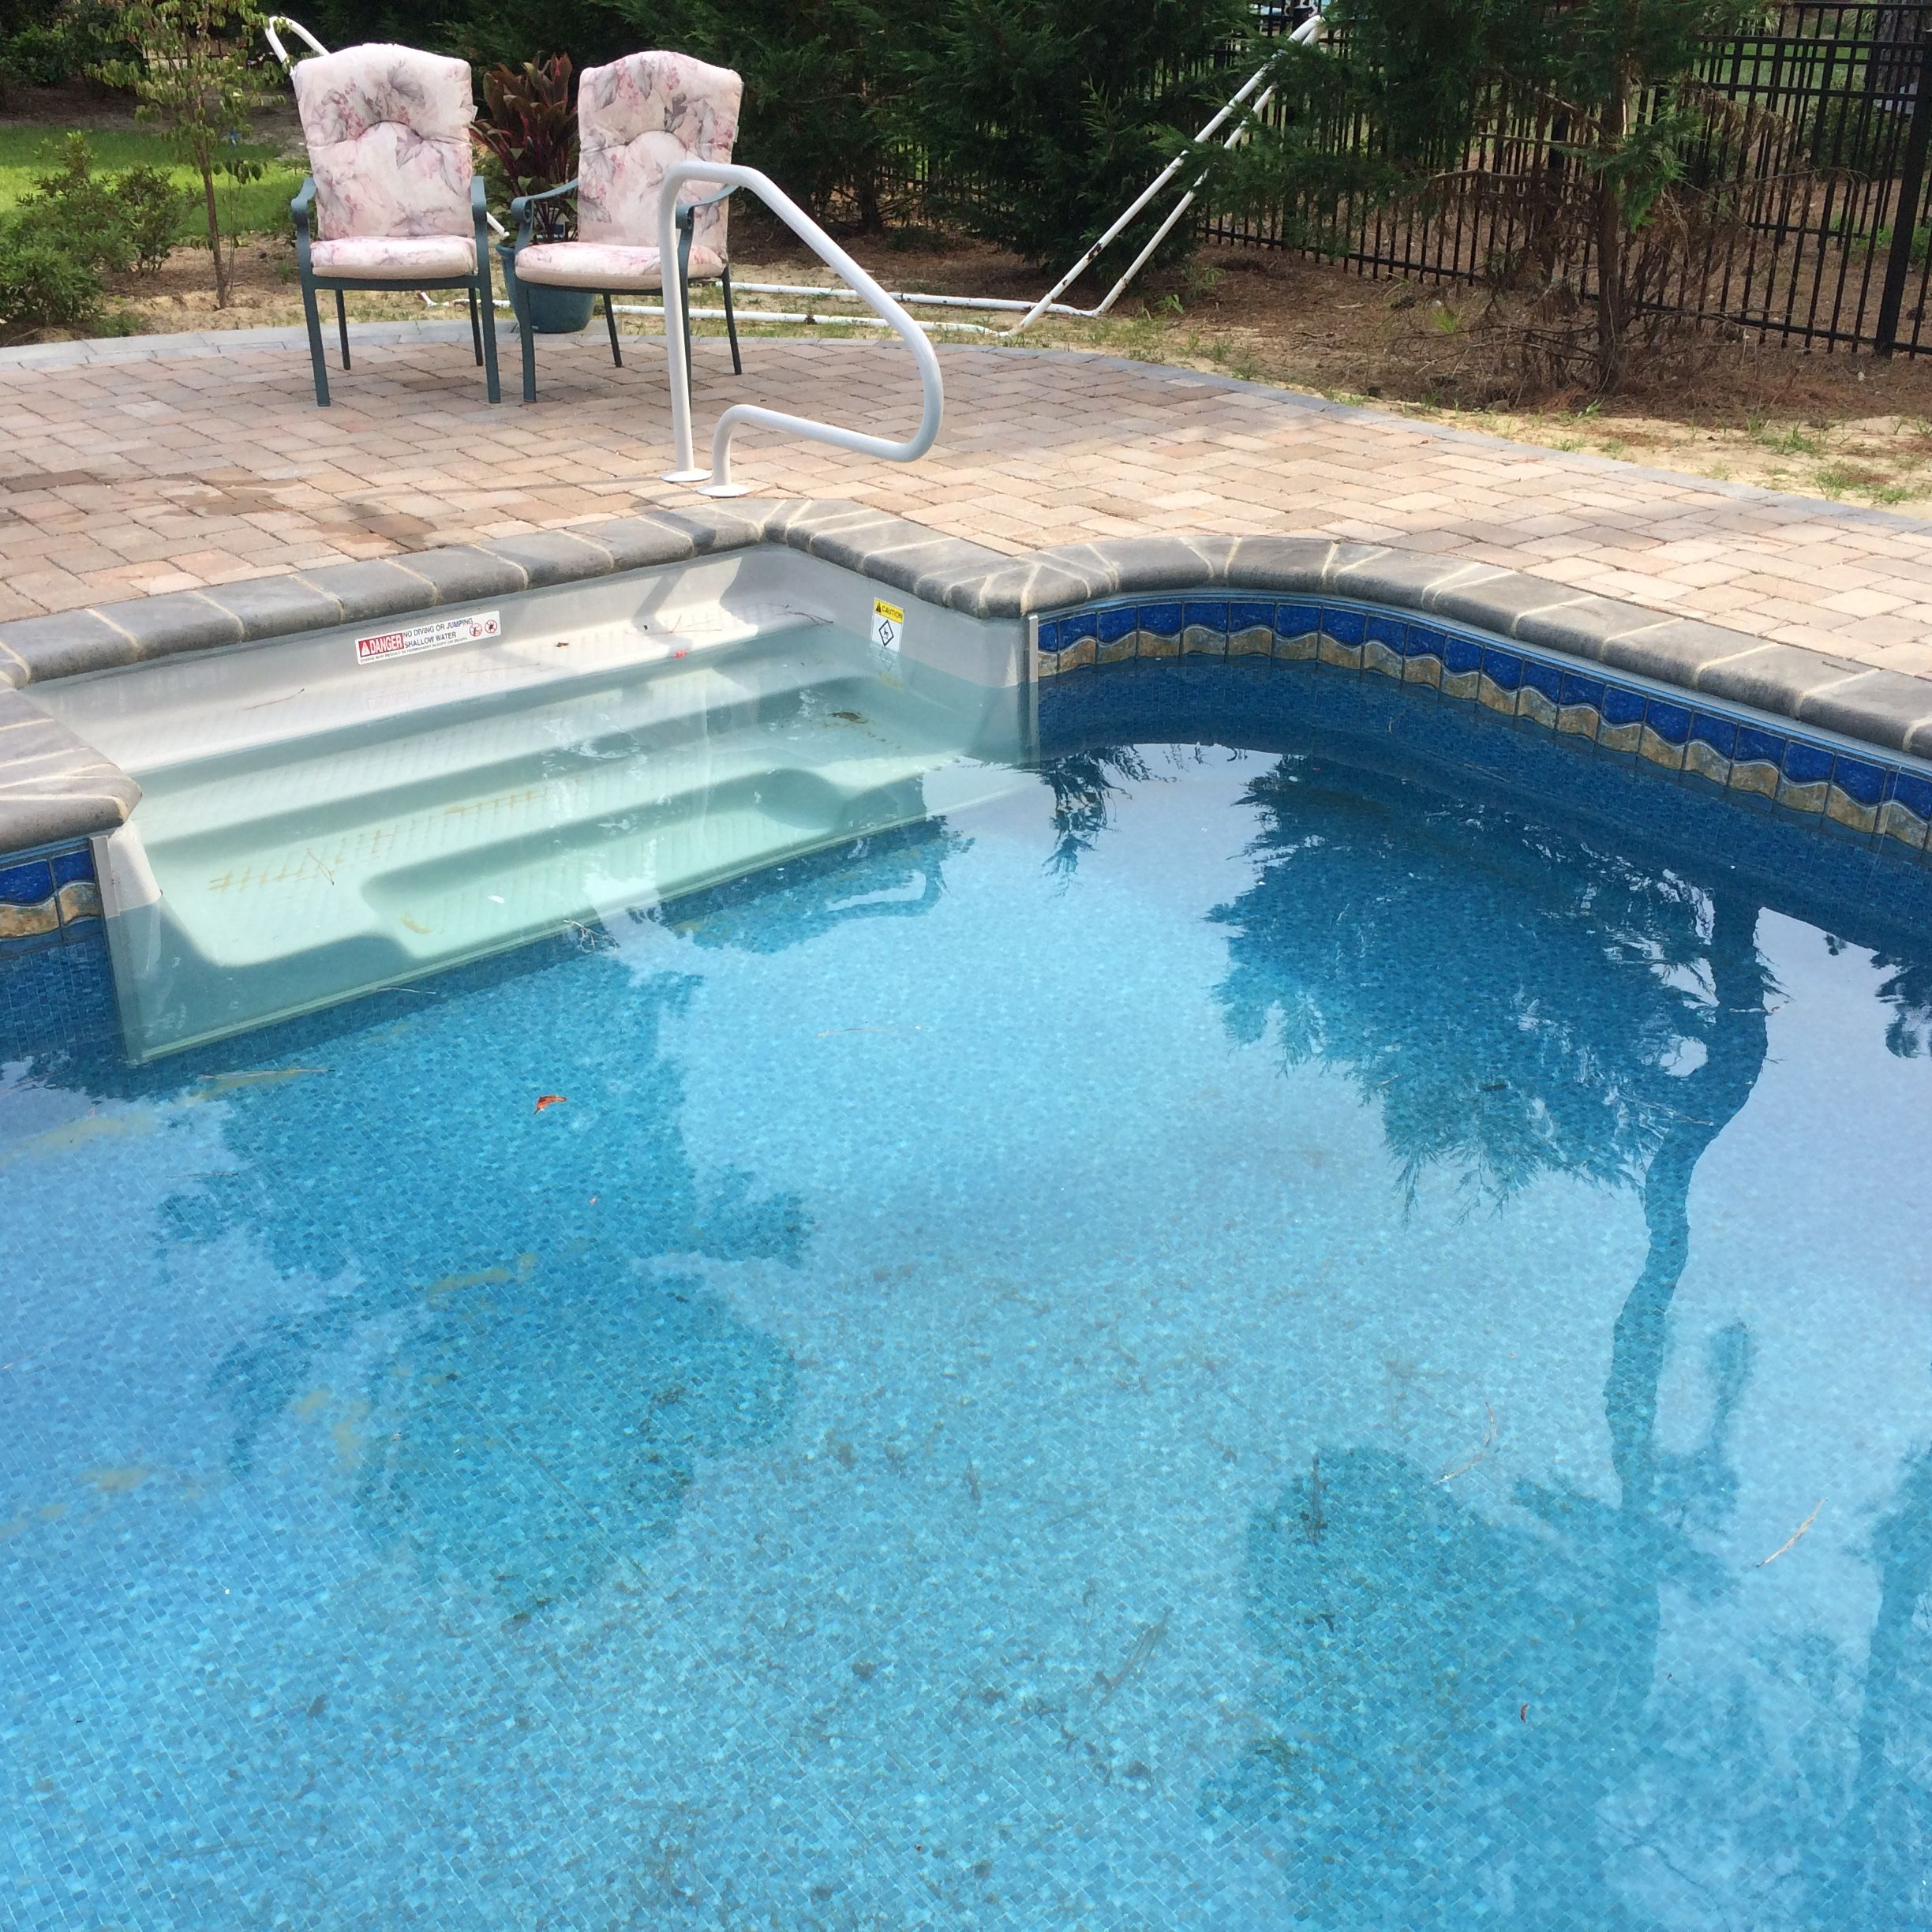 Swimming Pool Products And Supplies Raleigh Fayetteville